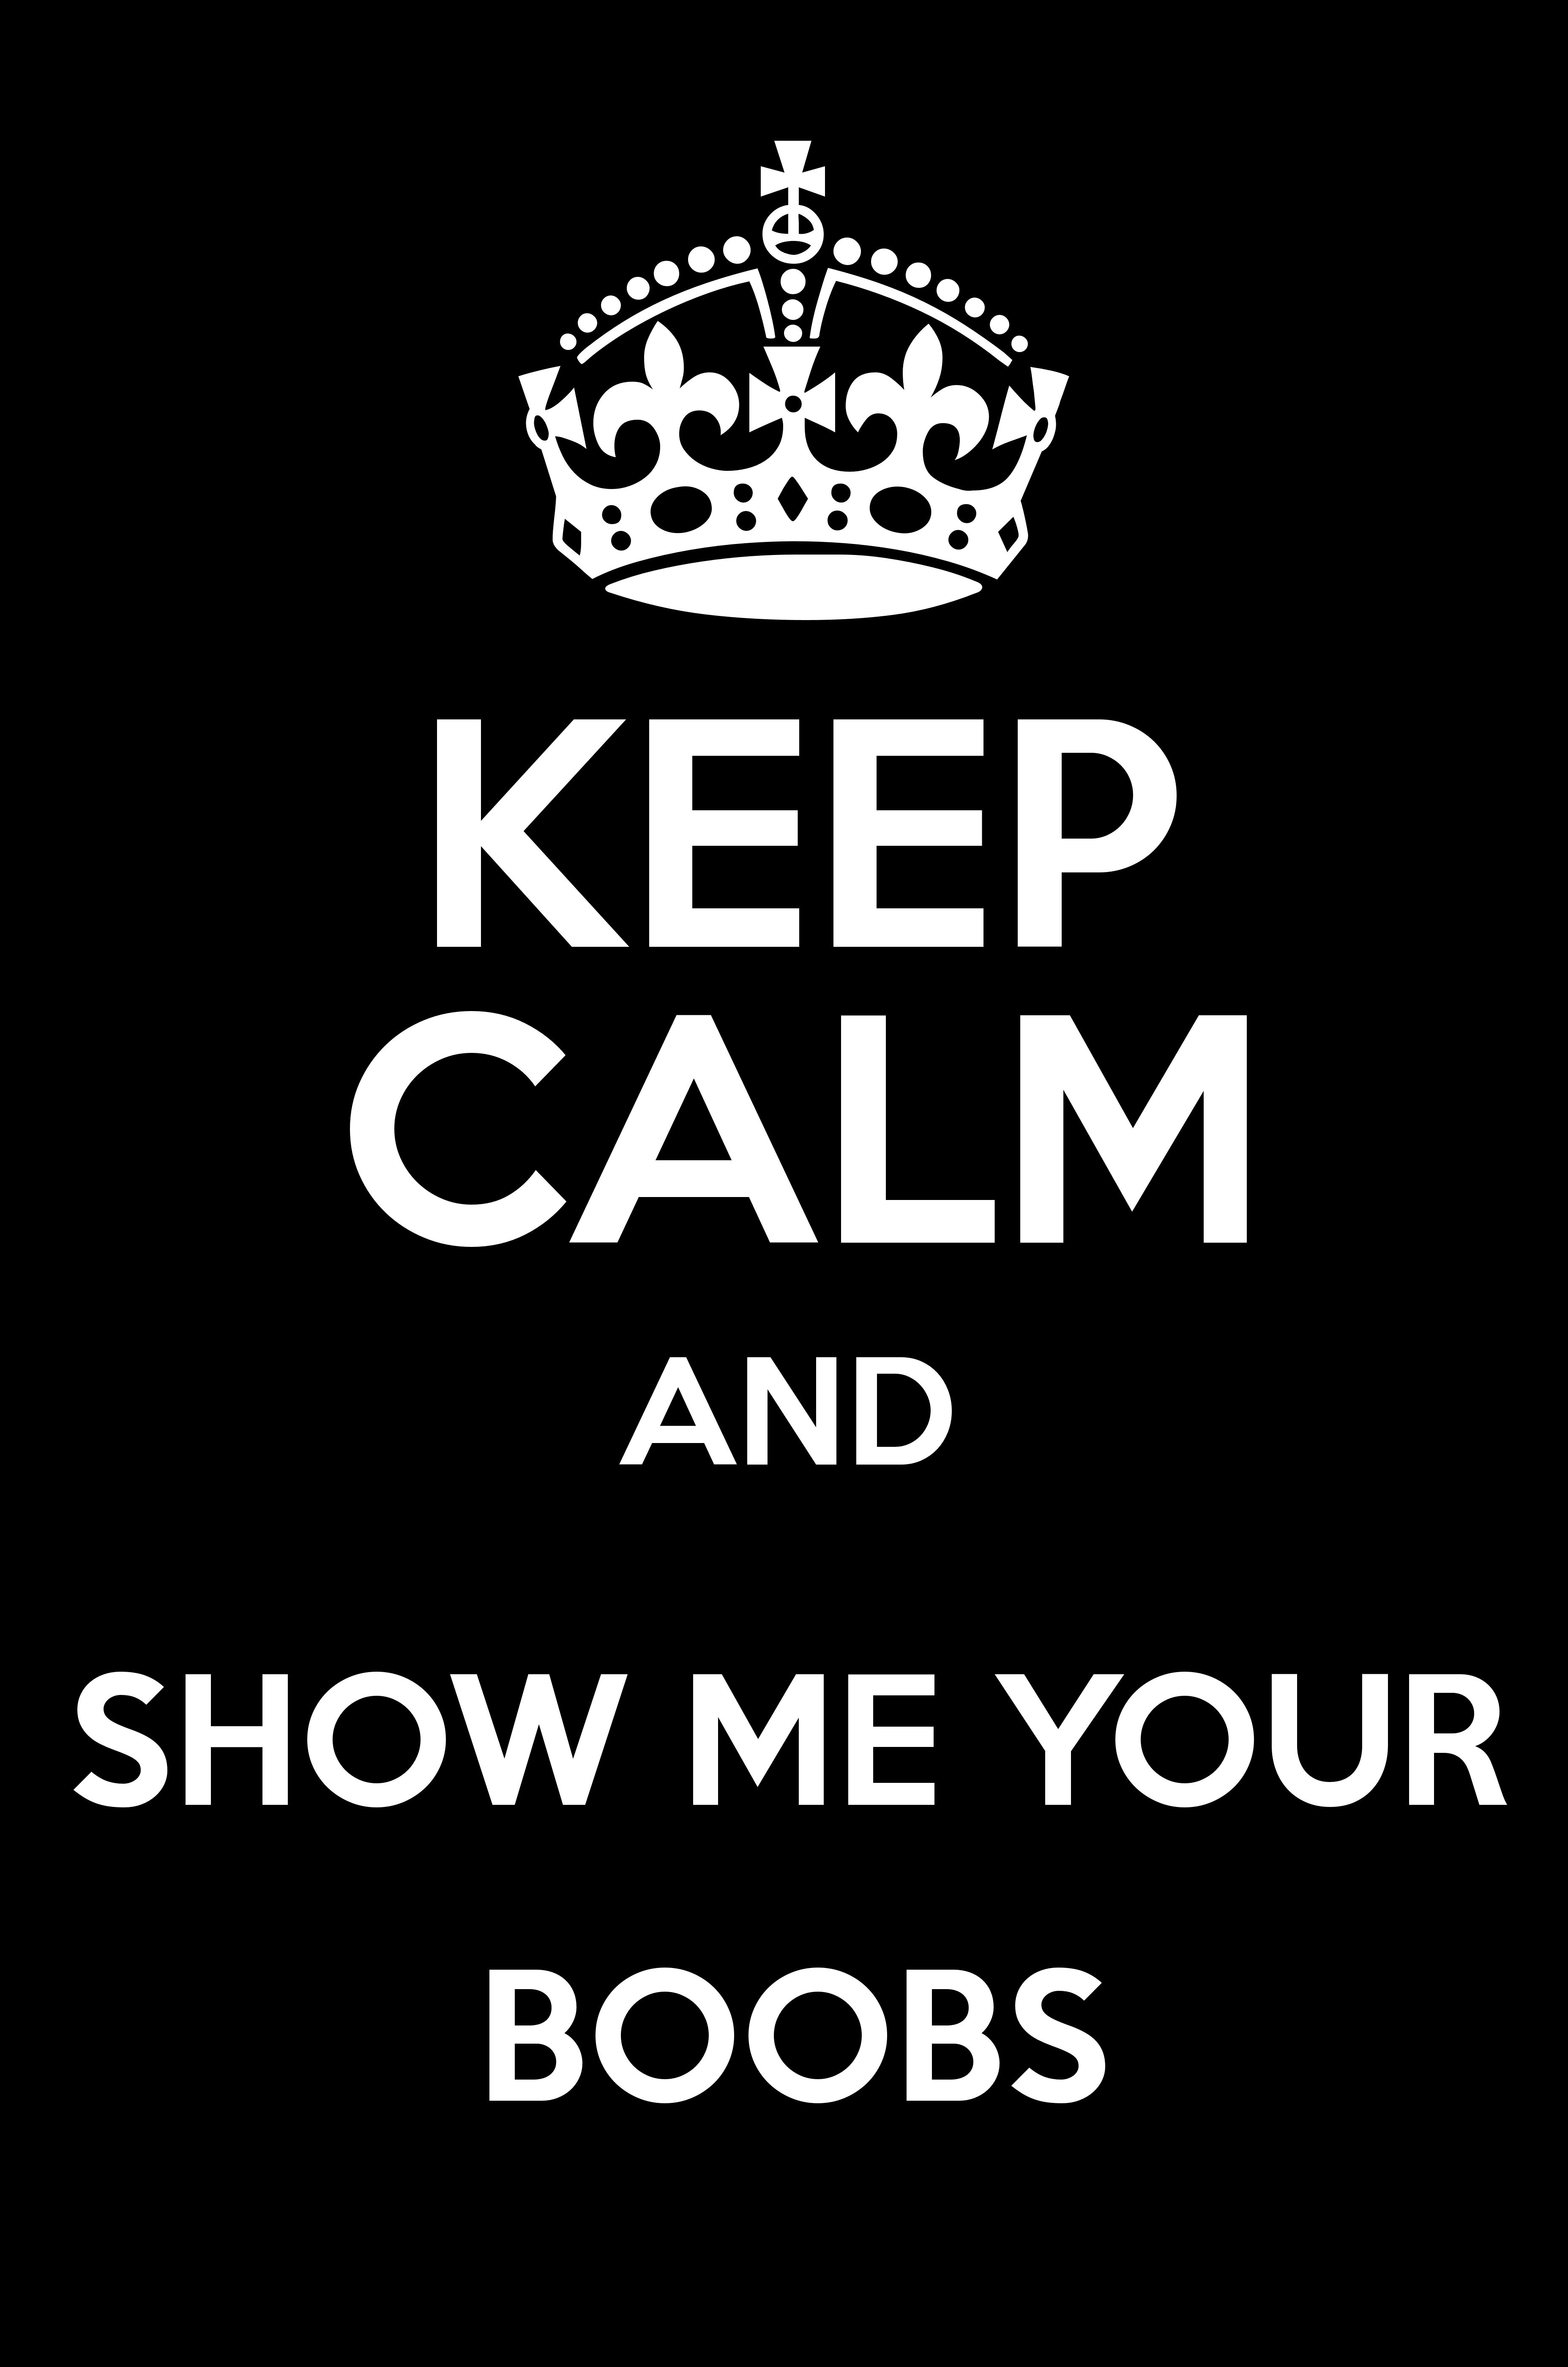 boobs Show me your